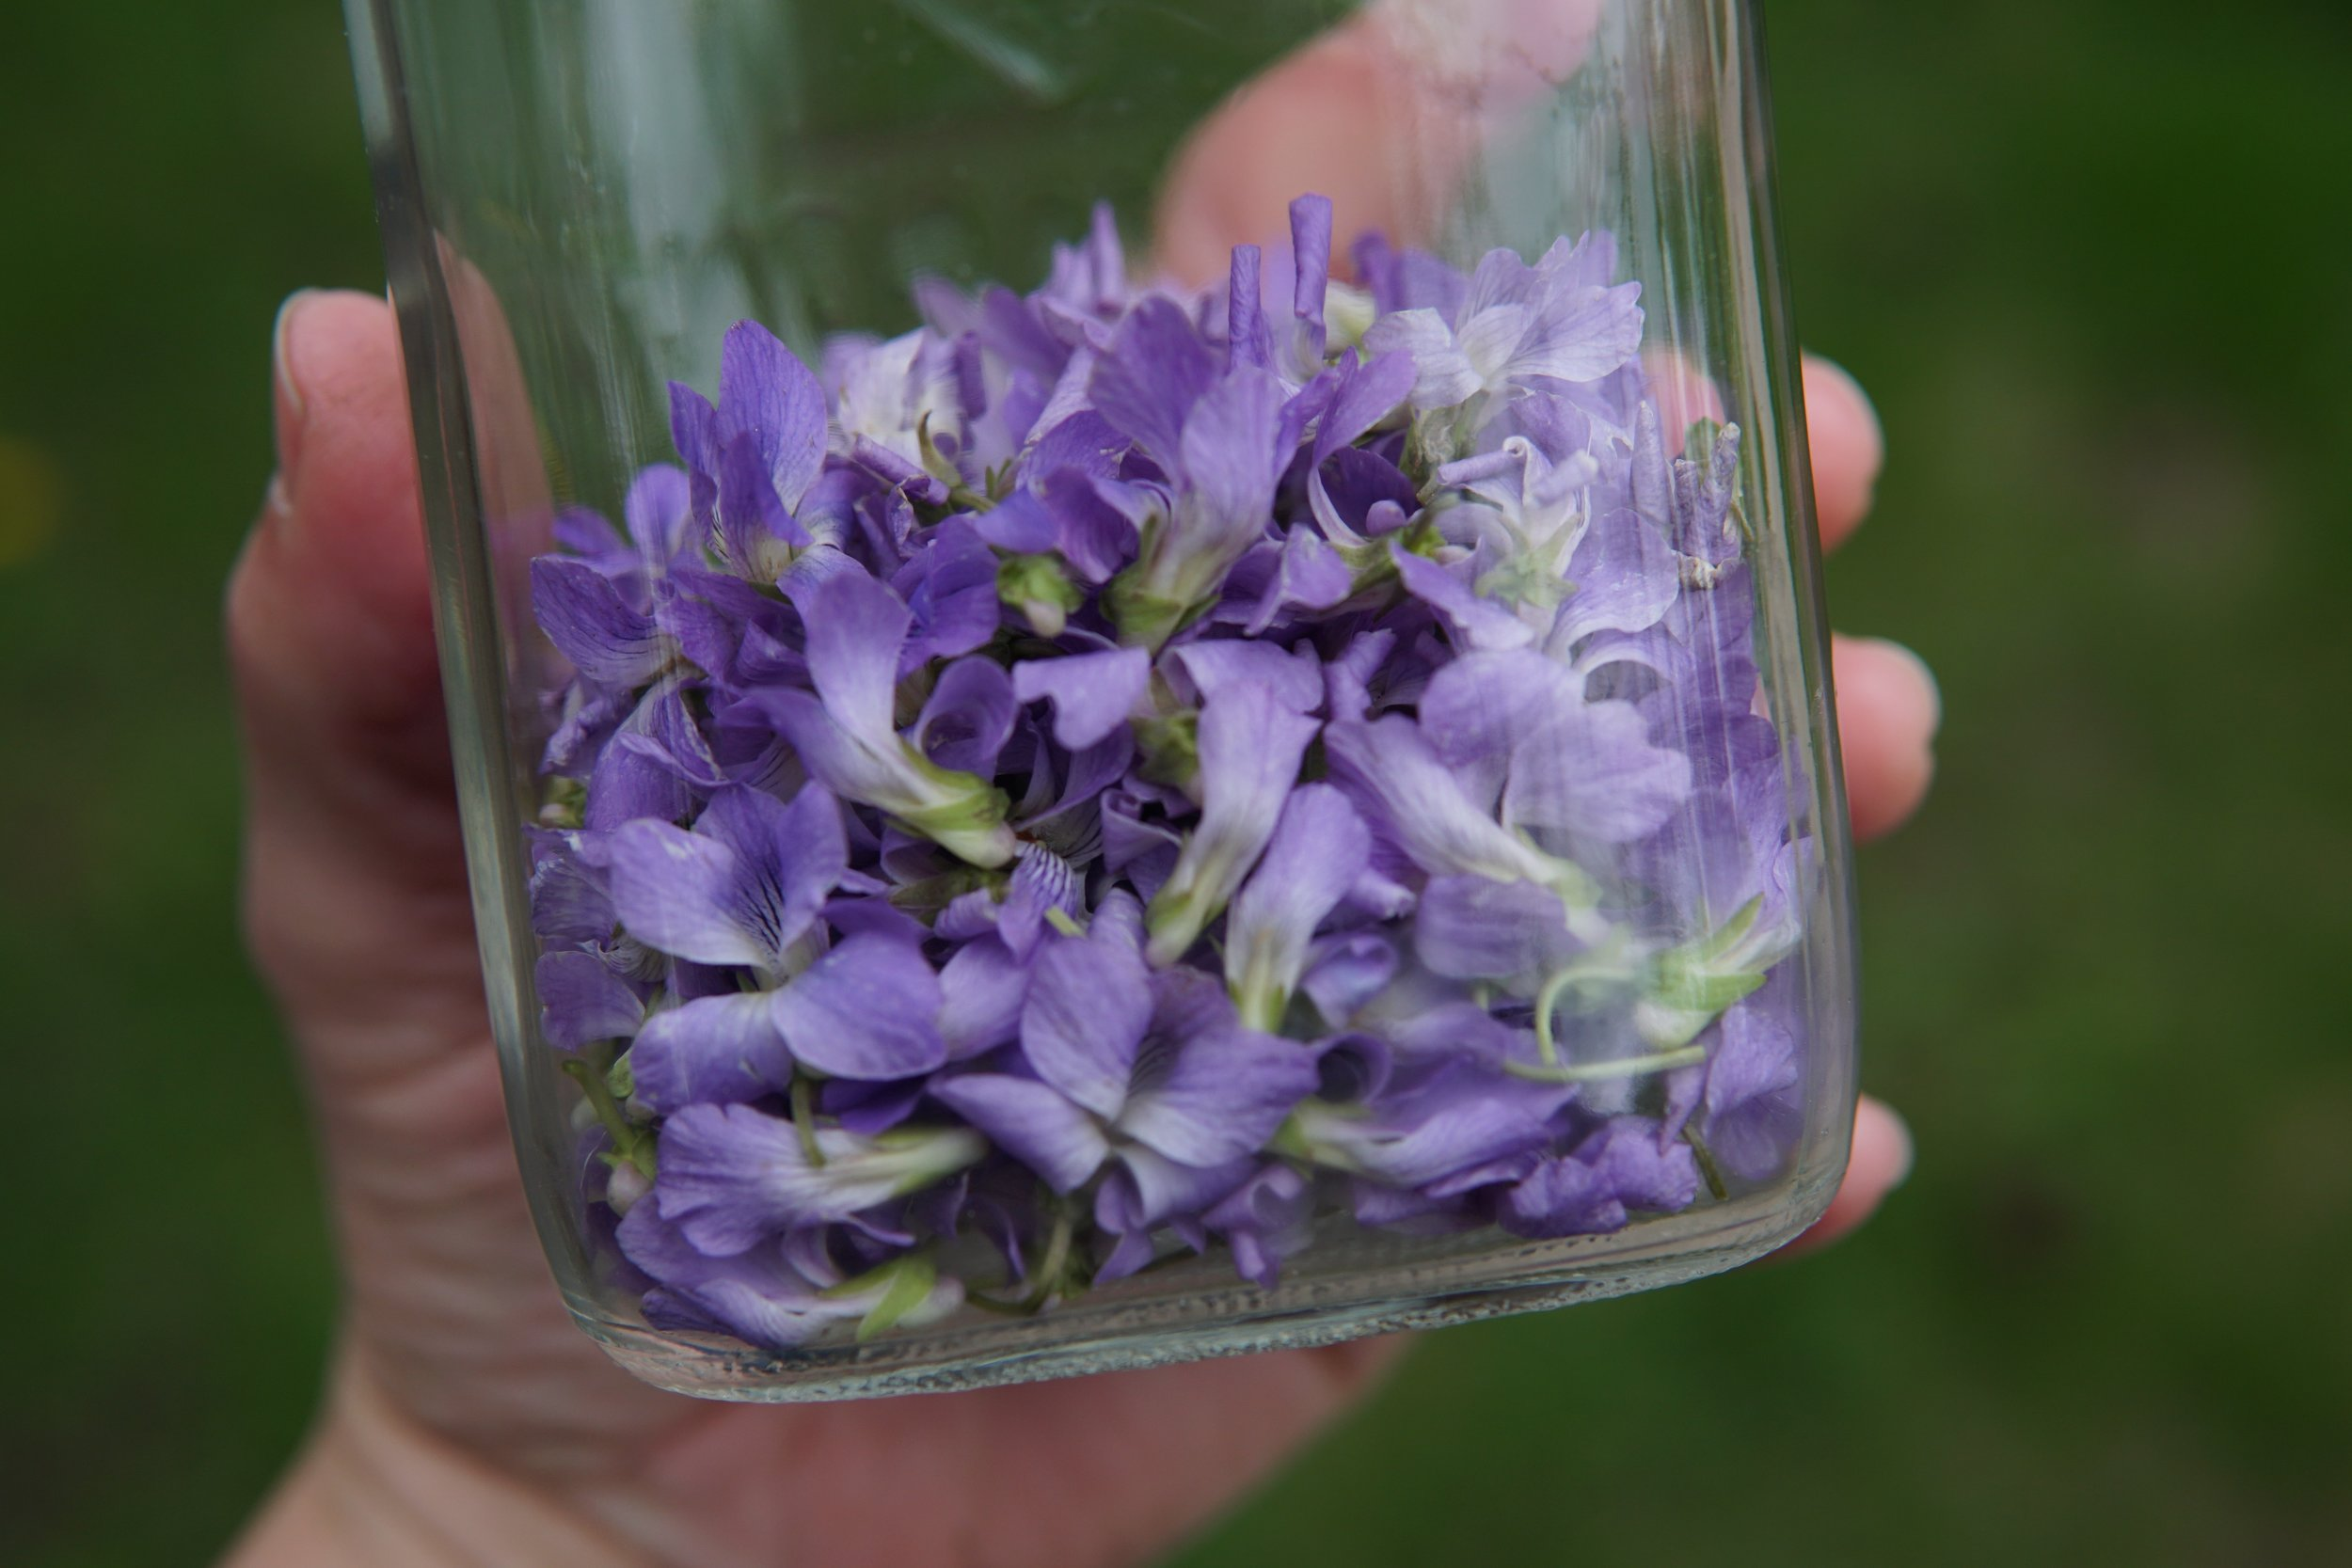 Violet flowers are cooling + soothing. They promote lymph flow + breast health.